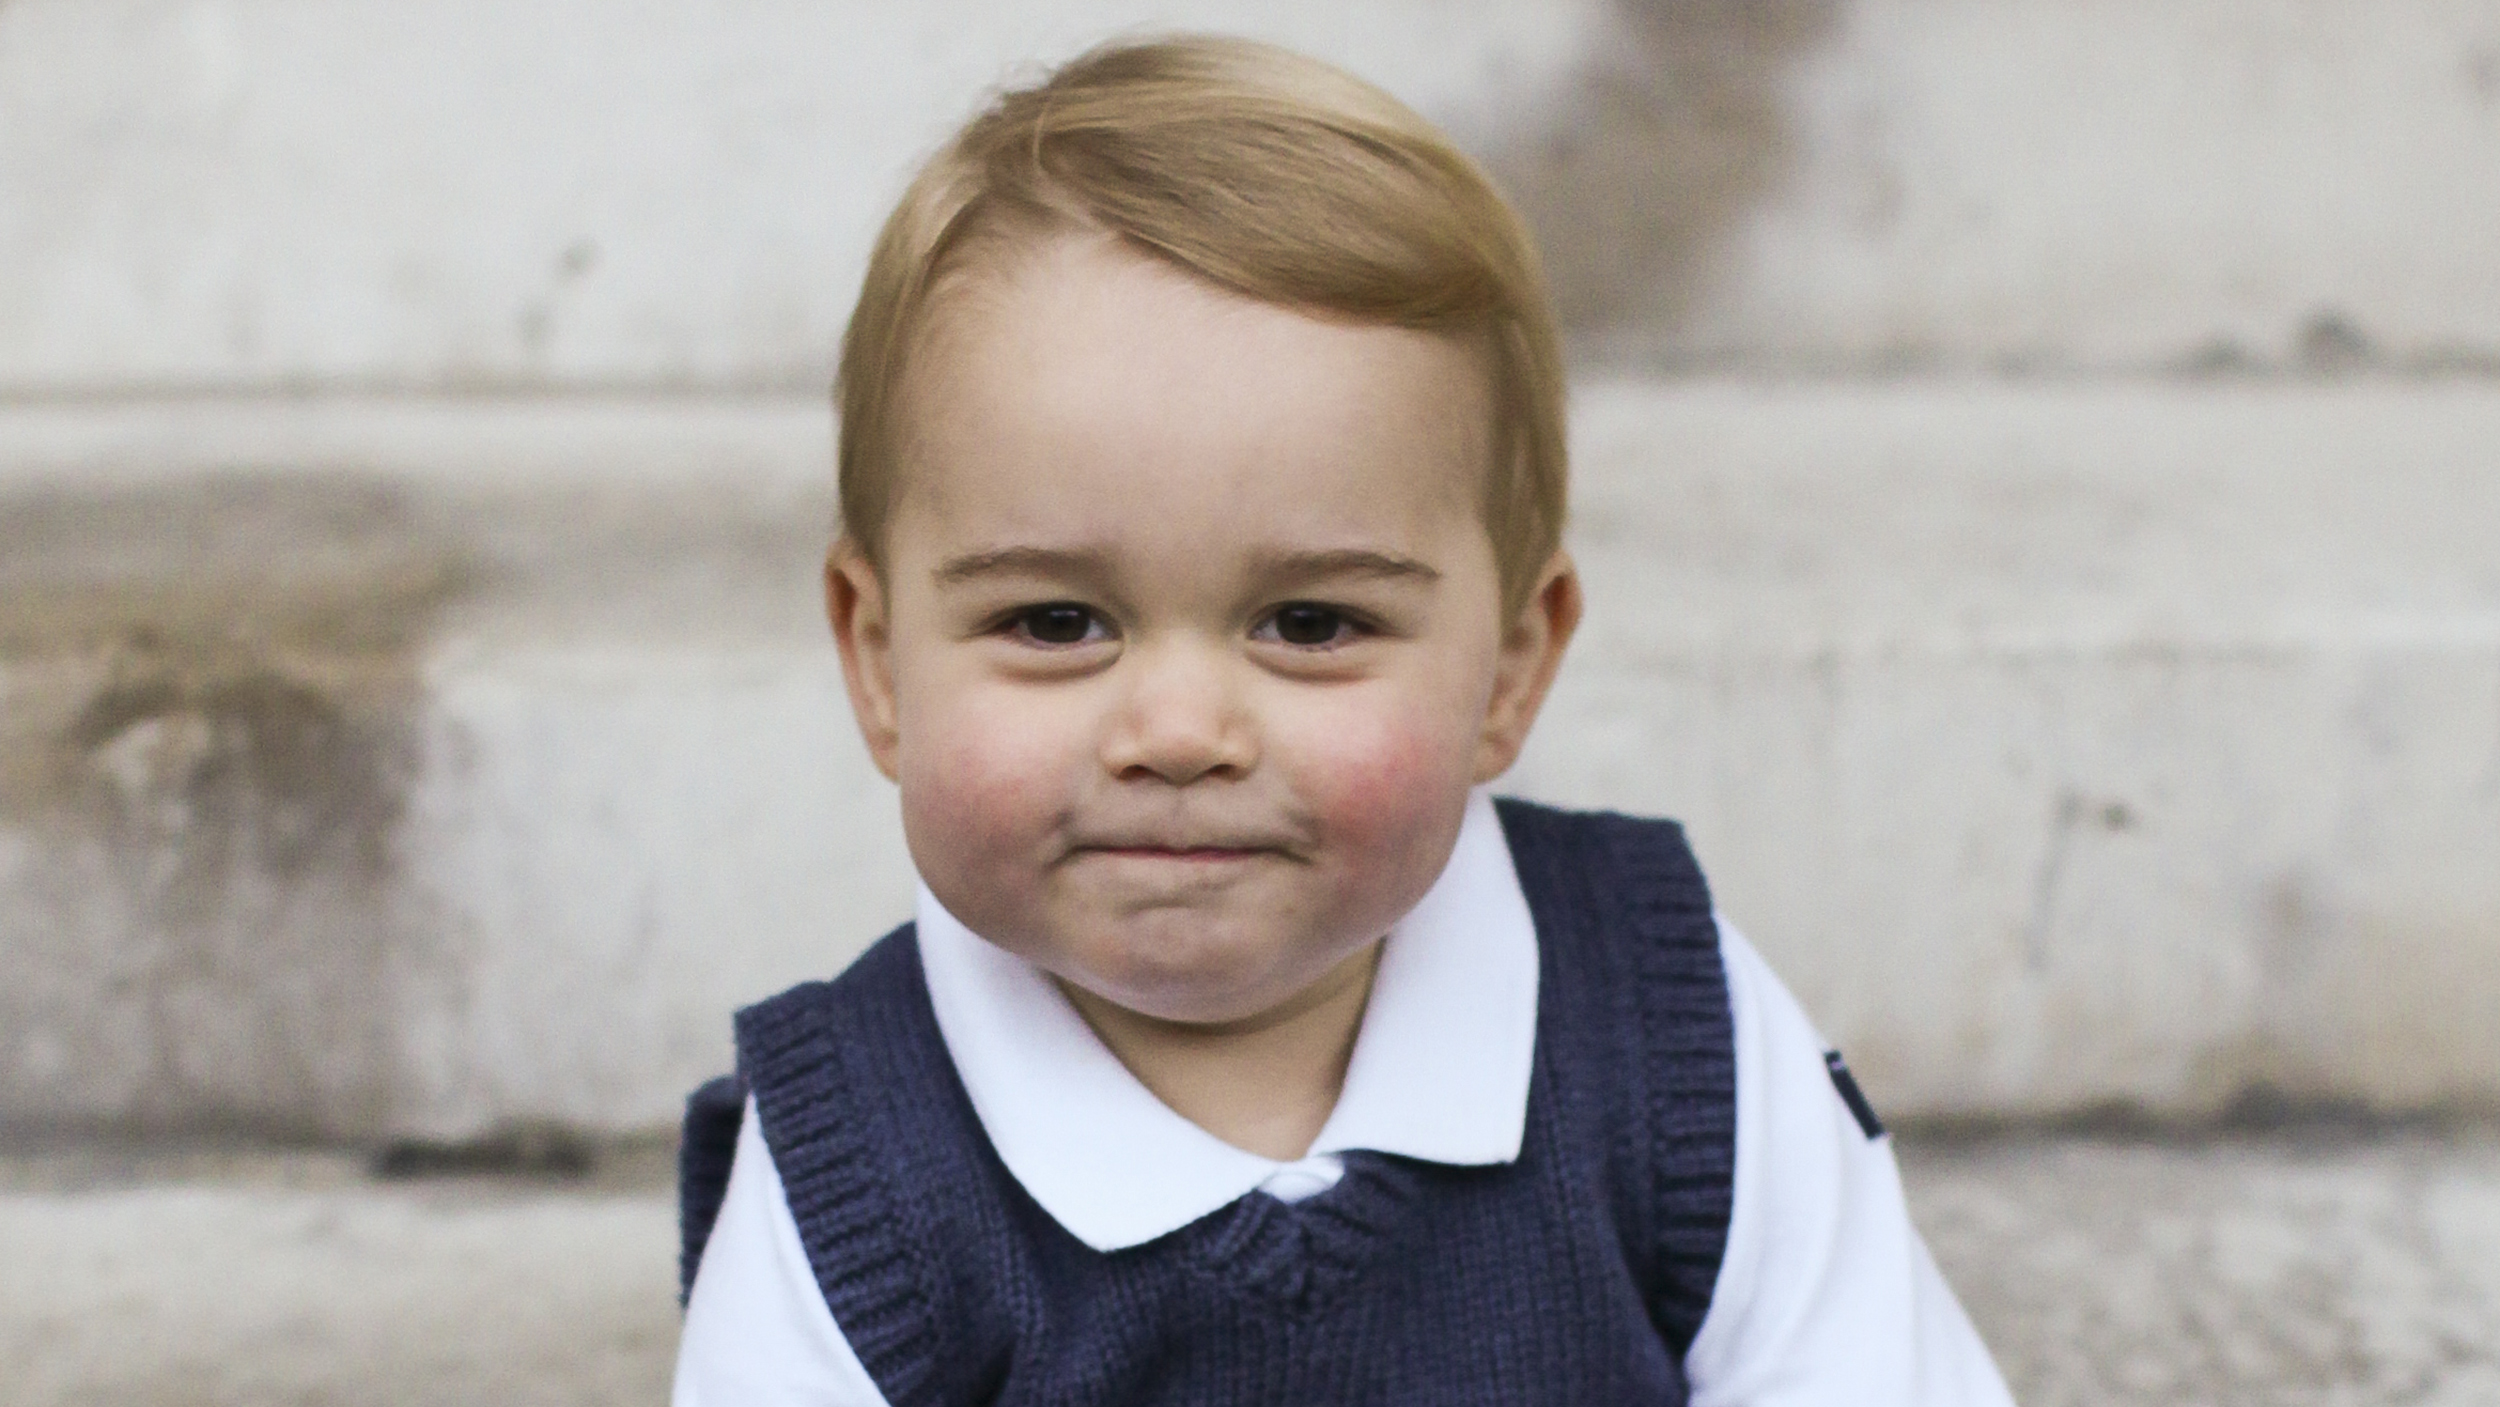 Prince George Looks Exactly Like A Young WilliamHarry At Royal Wedding picture